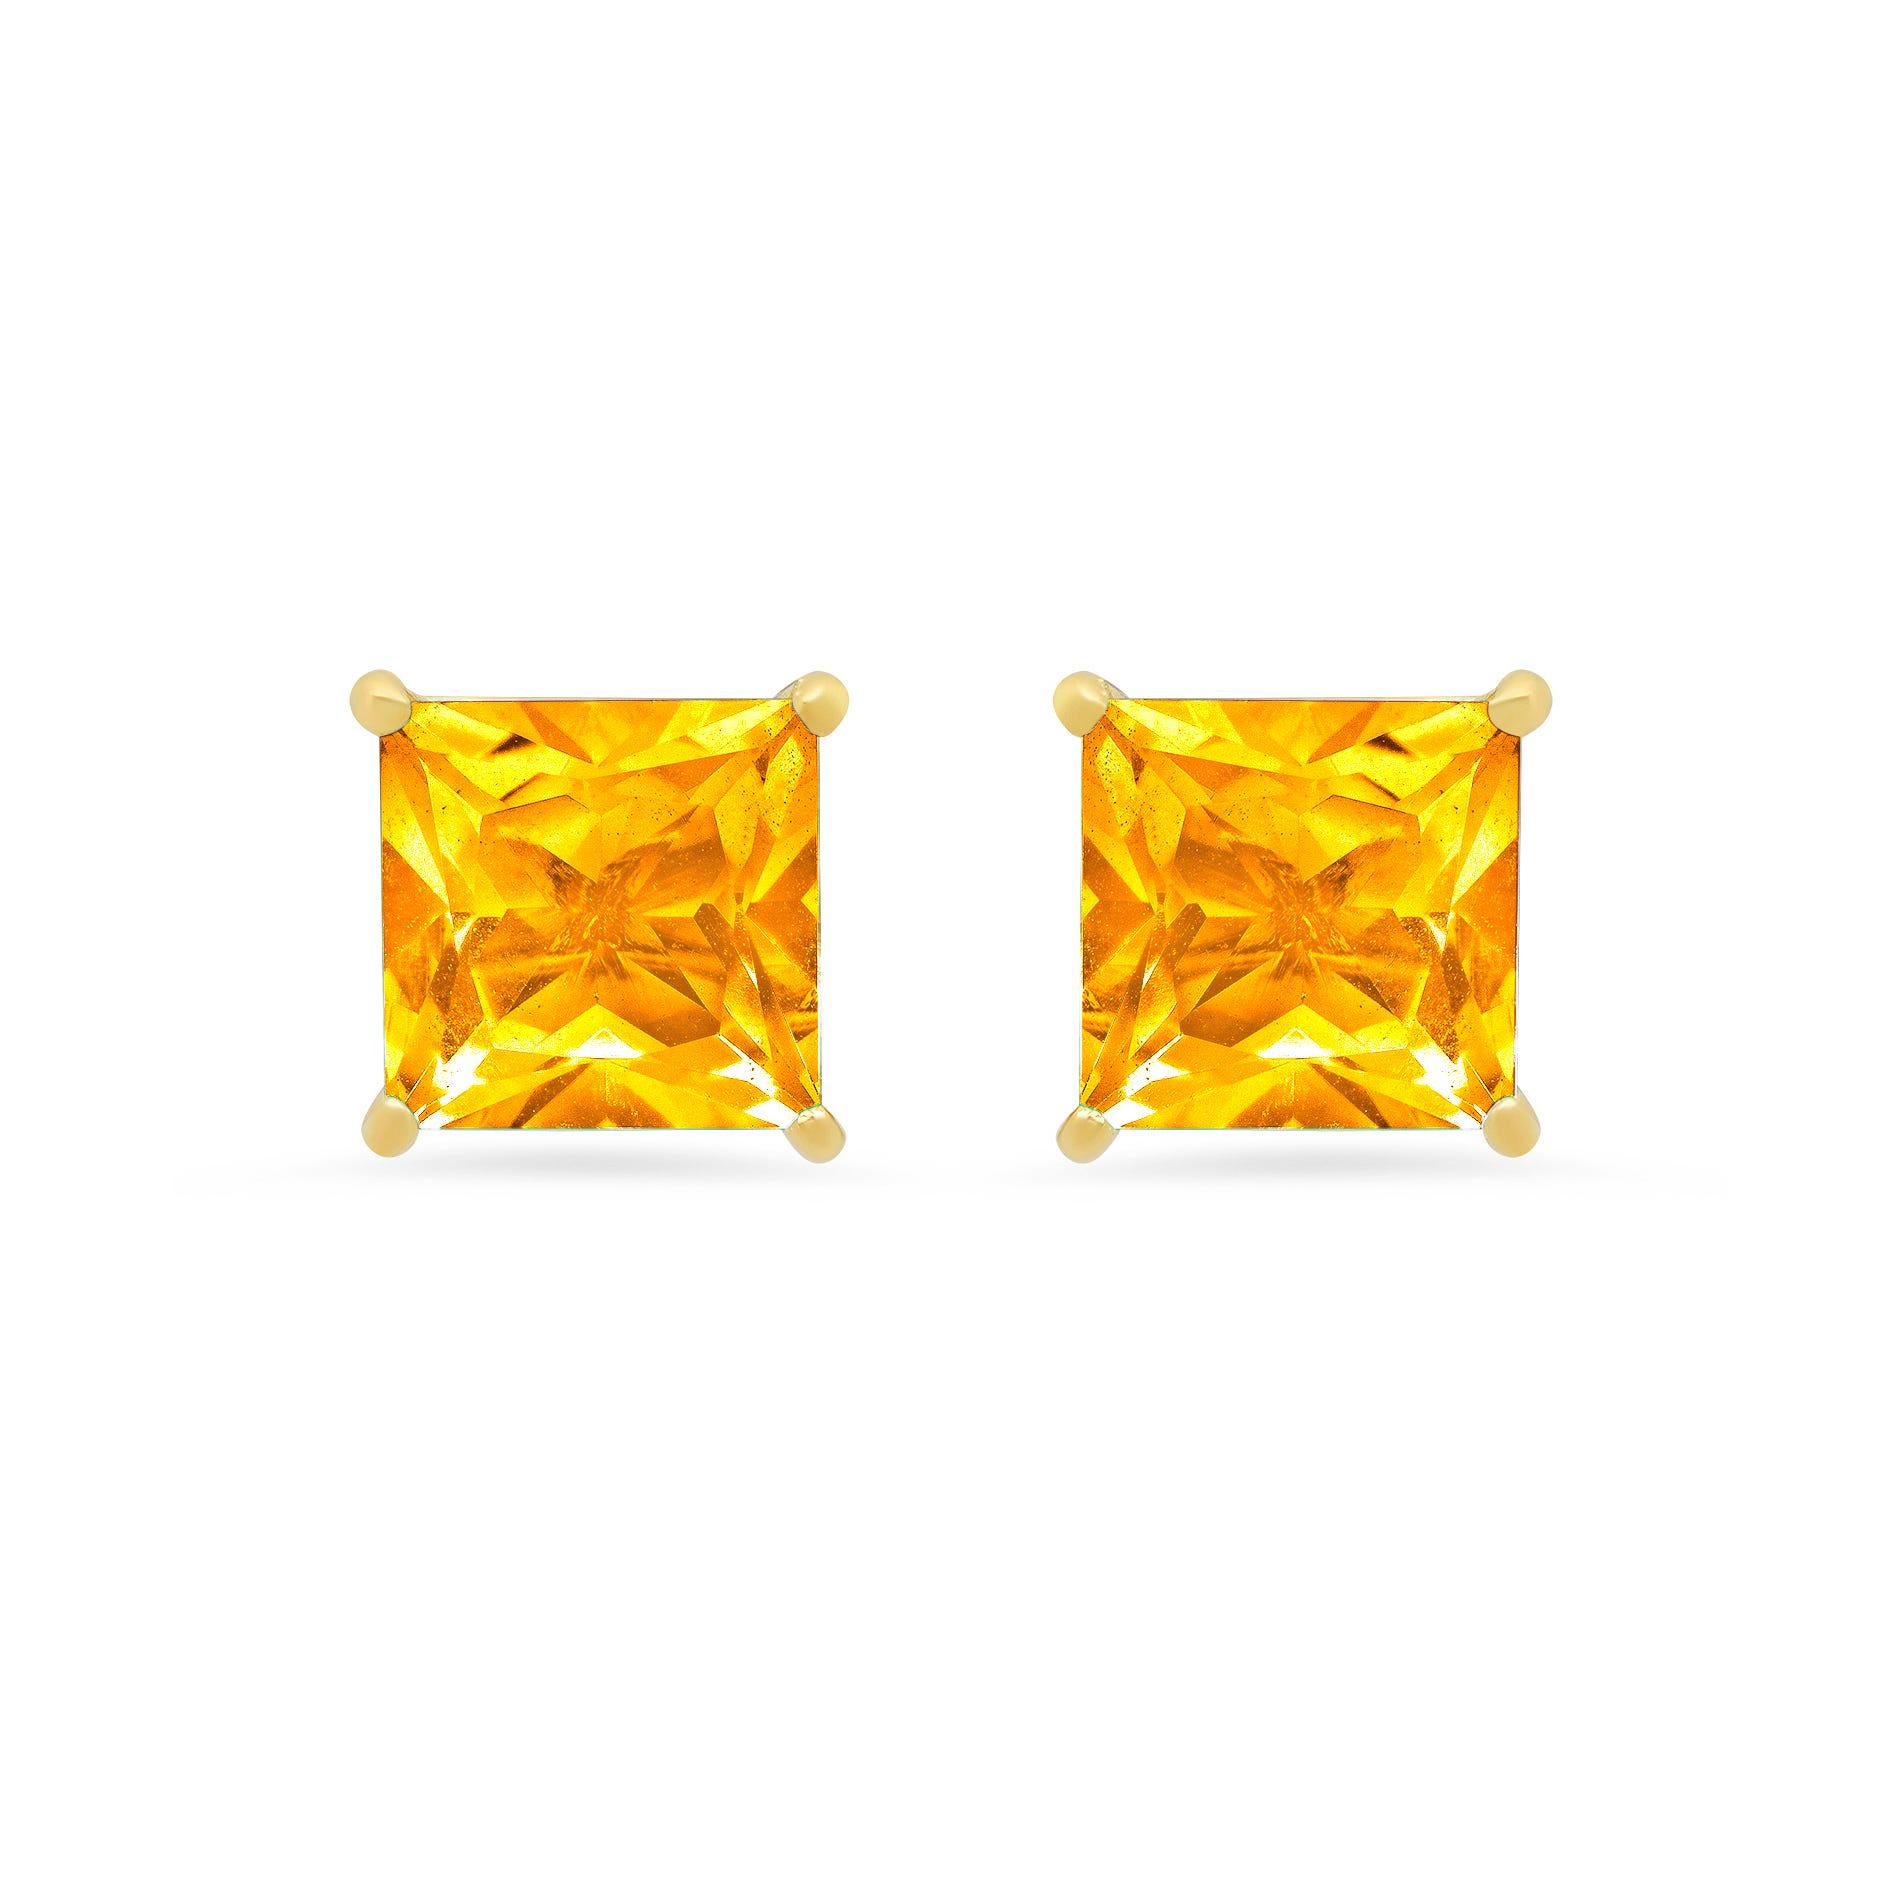 Princess-Cut Citrine Solitaire Stud Earrings in 14k Yellow Gold